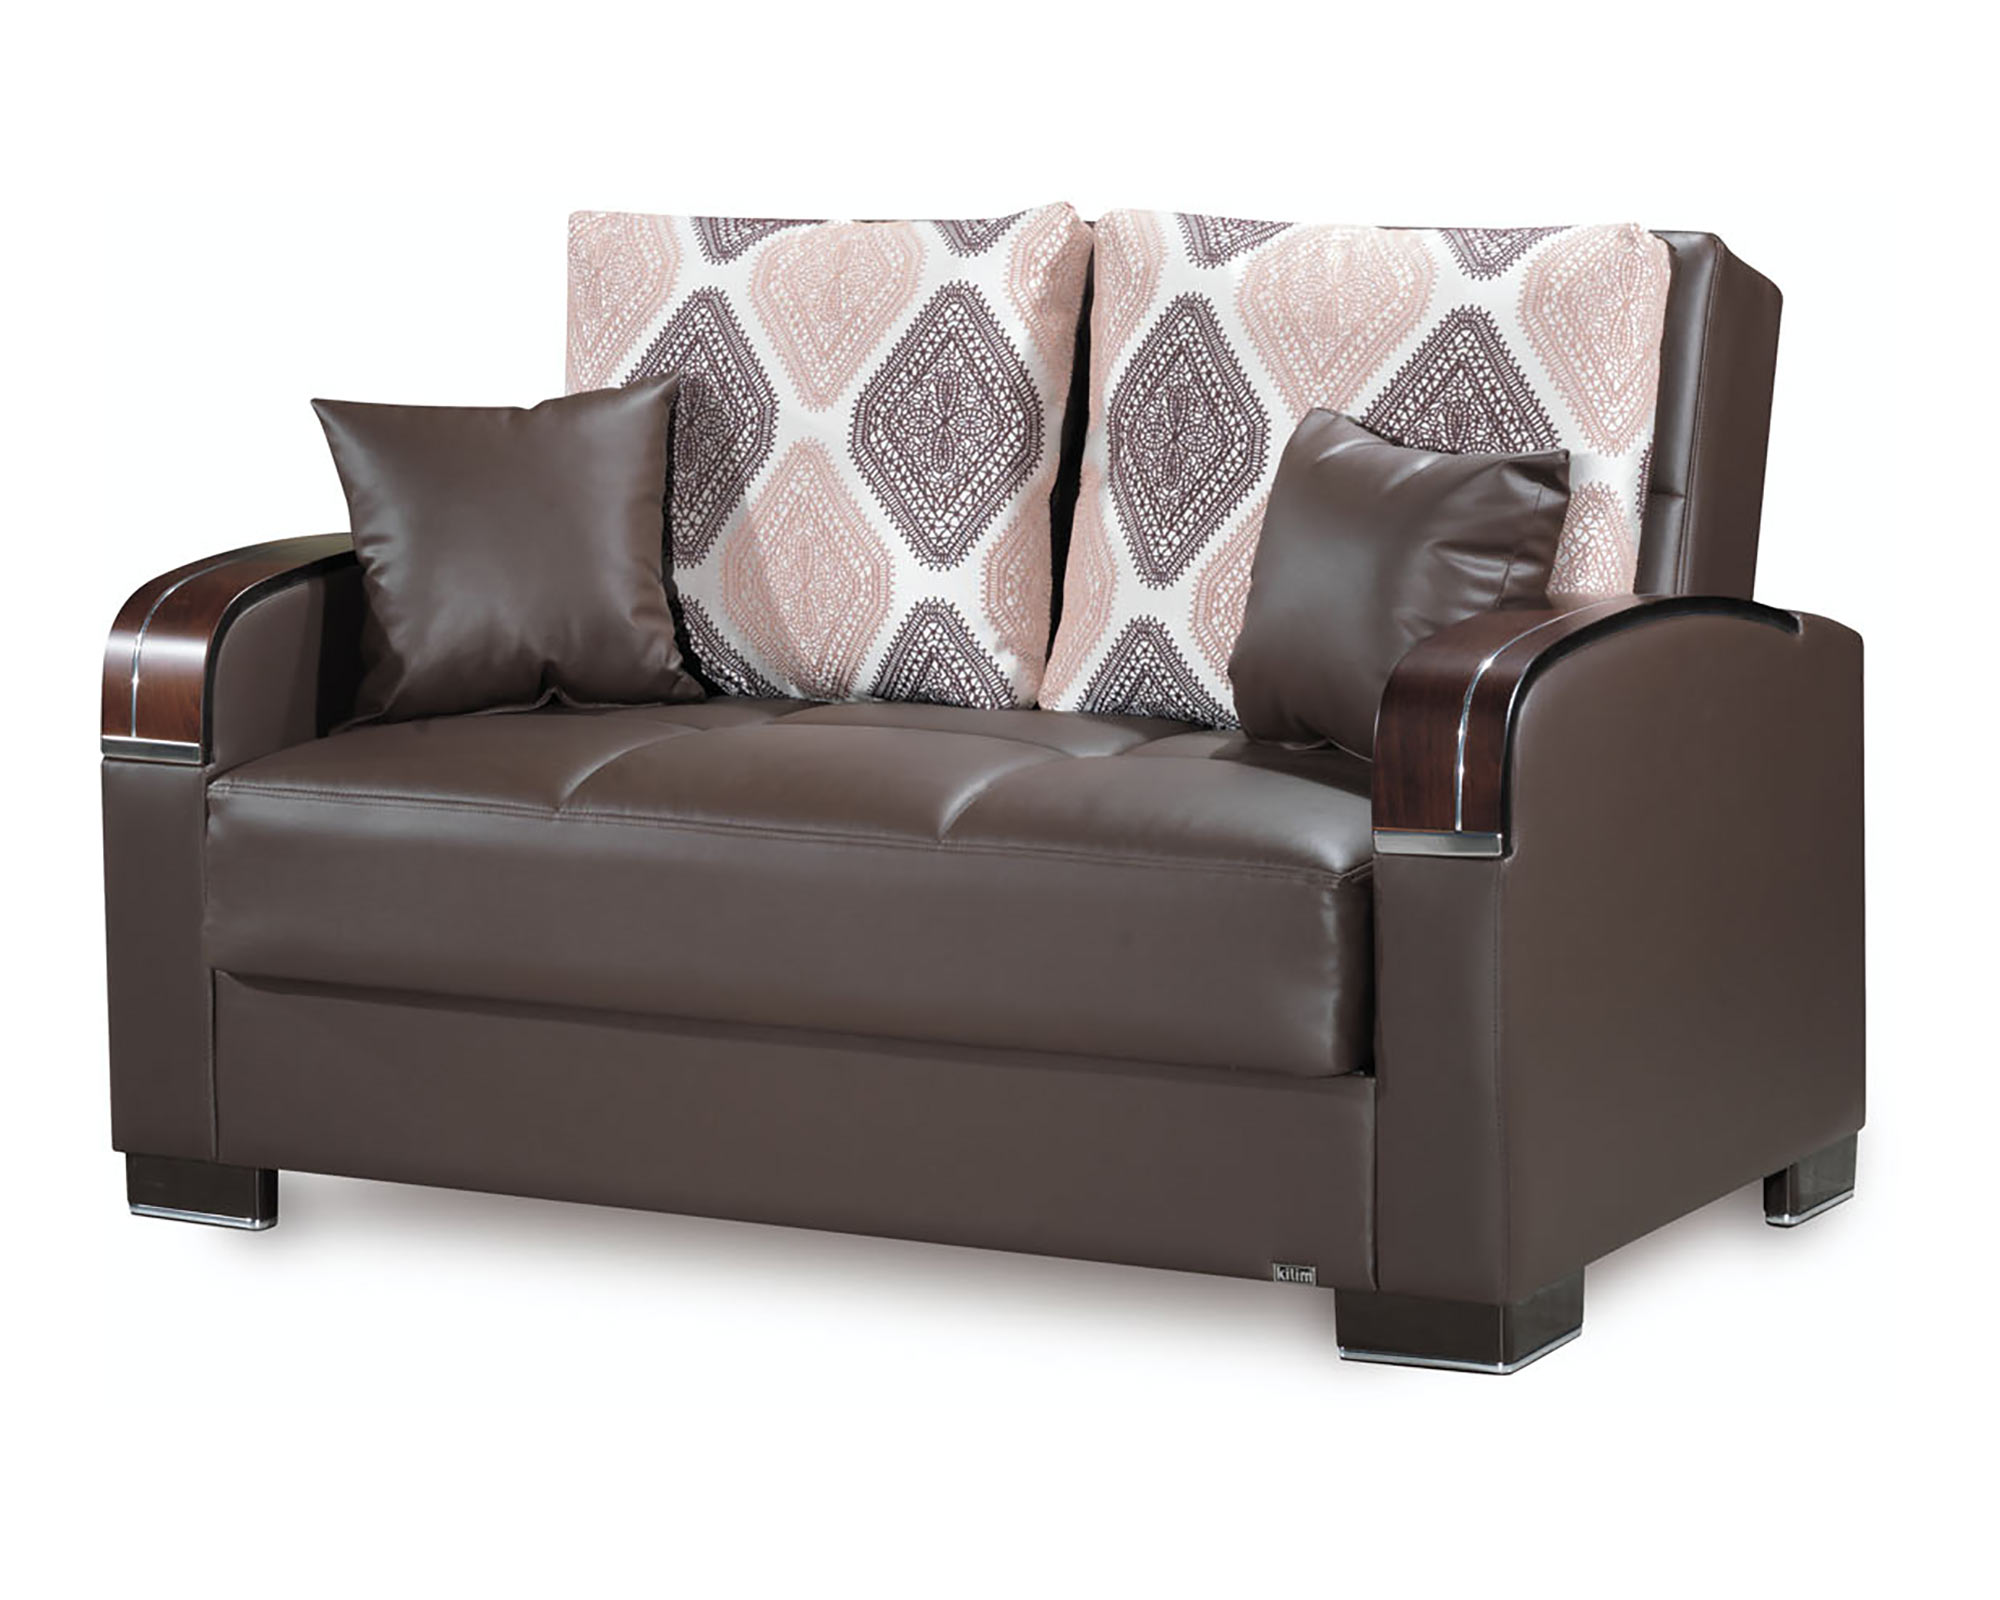 Mobimax Brown PU Leather Convertible Loveseat by Casamode